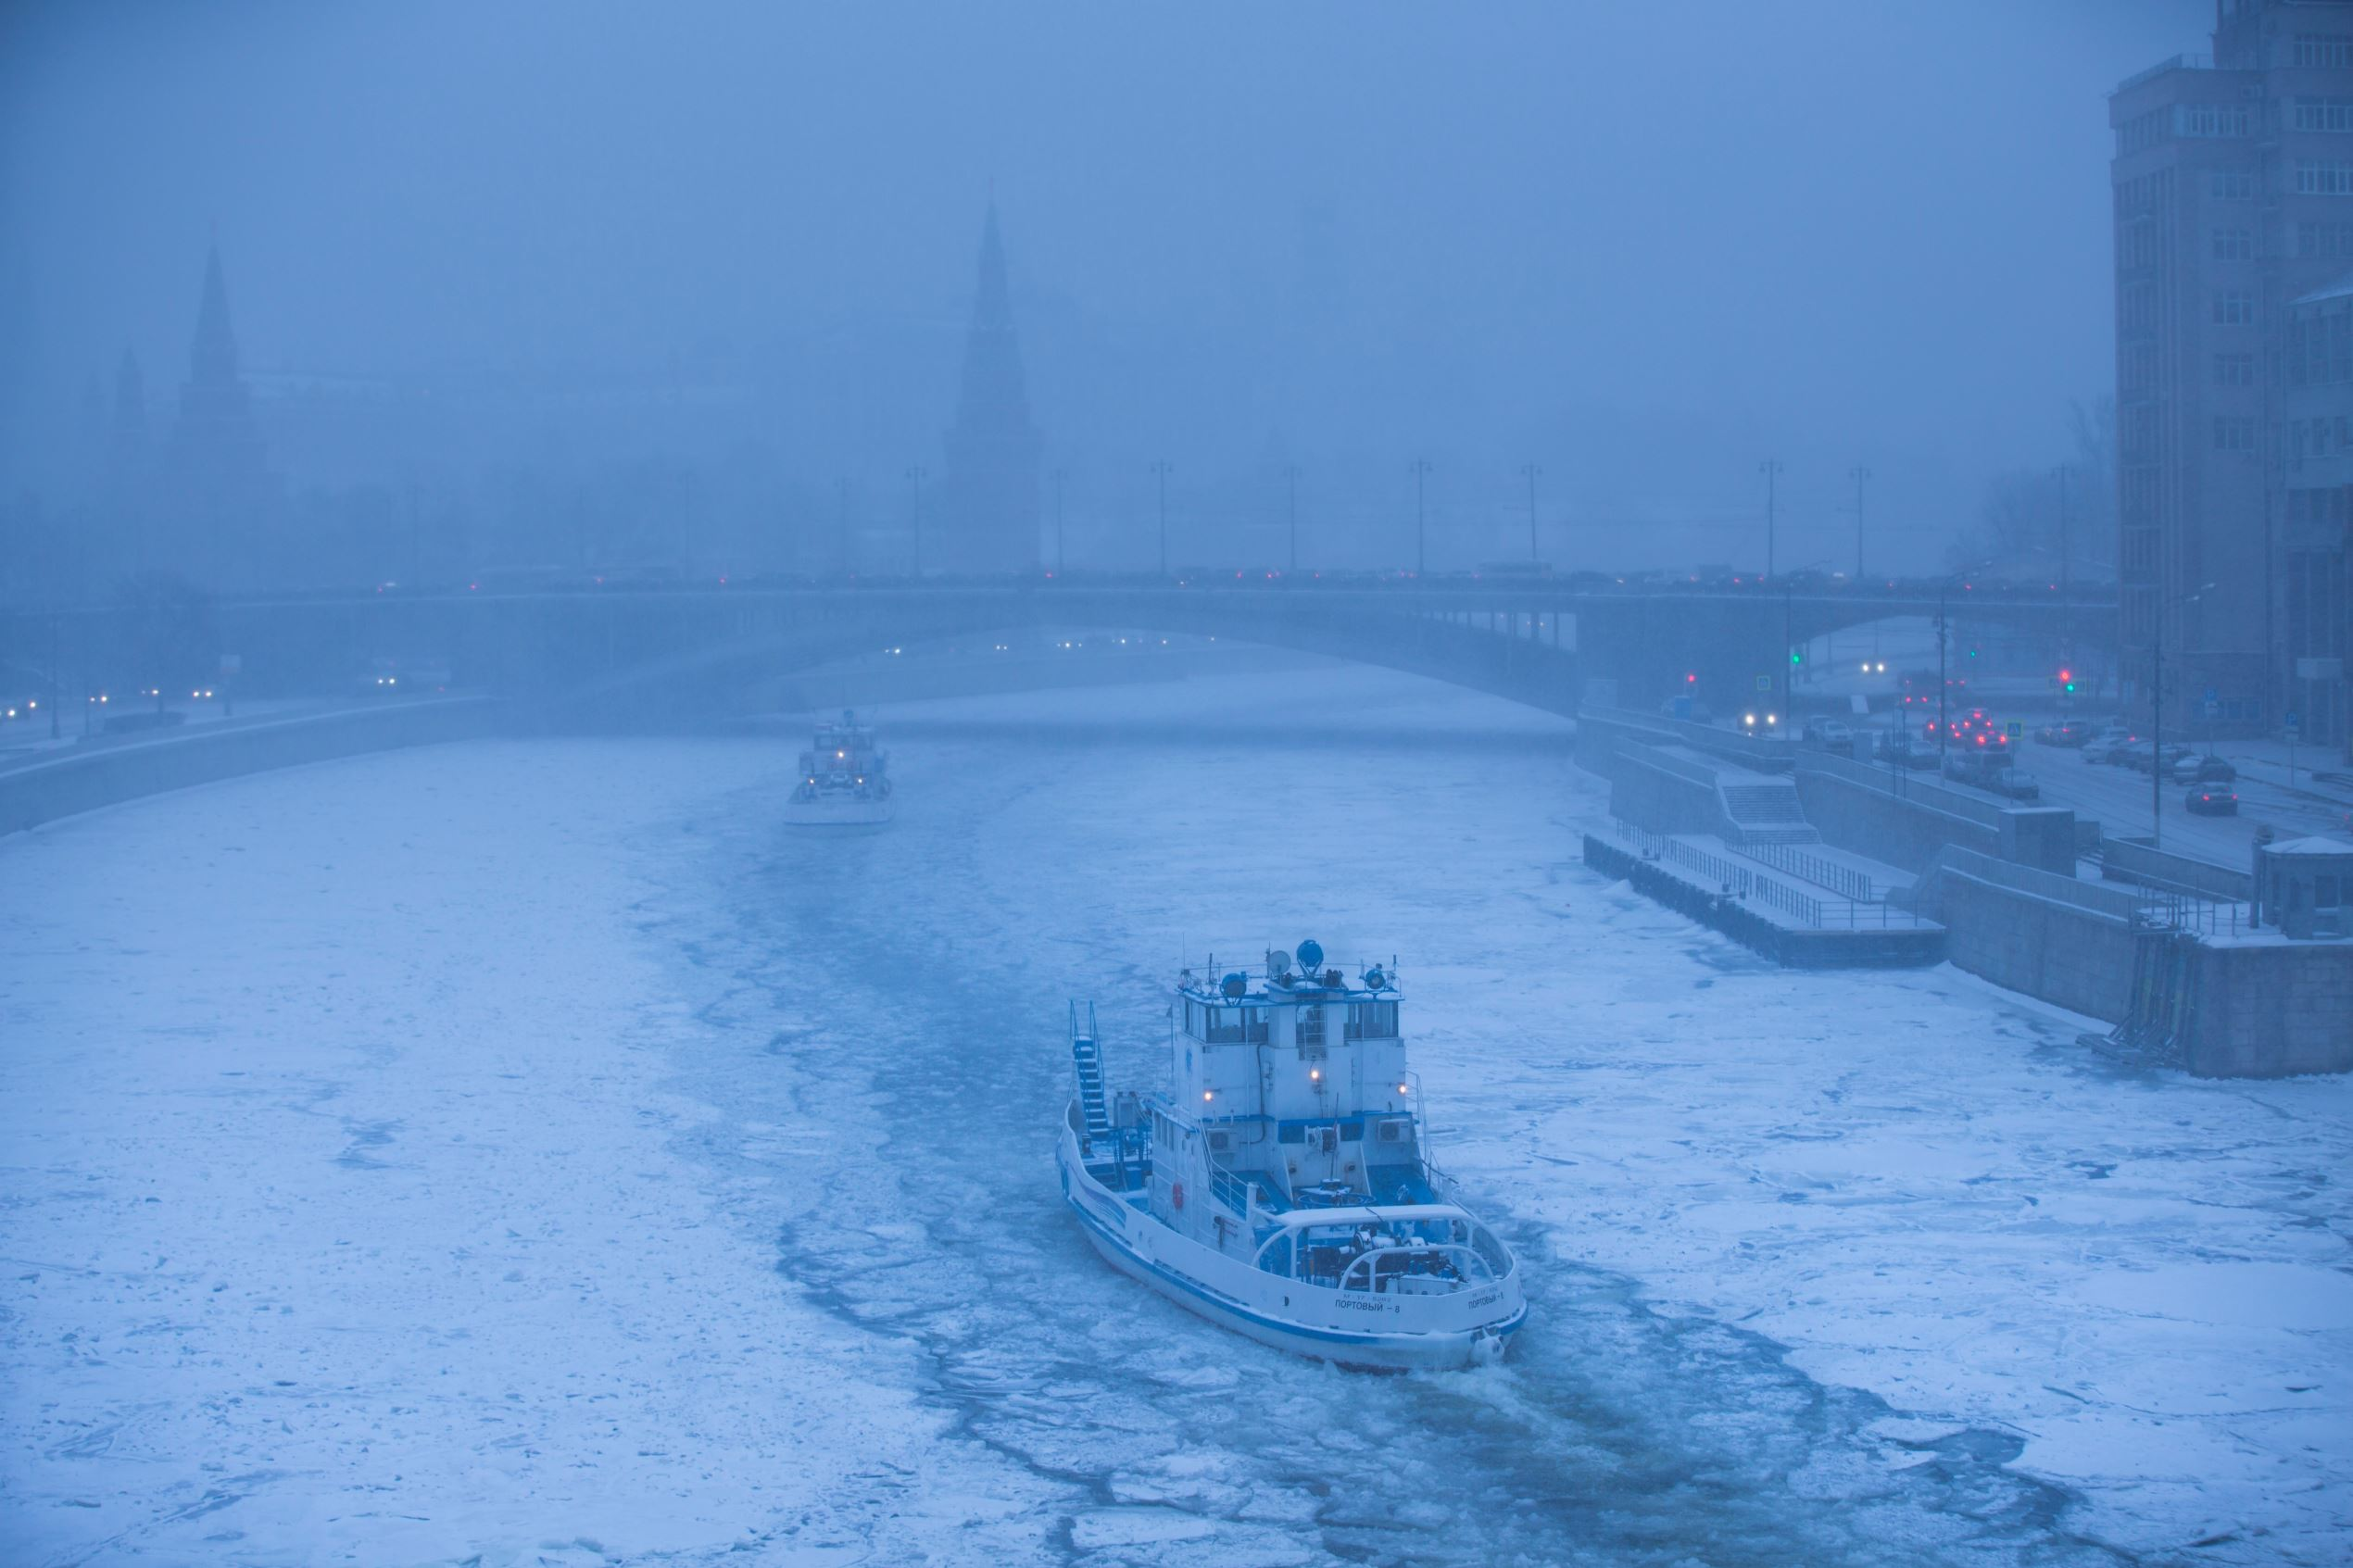 Слайд 7 из 86: Two ice breakers move along the frozen Moskva River with the Kremlin in the background during snowfall in Moscow, Russia, Tuesday, Jan. 12, 2016. Moscow was hit by a heavy snowfall Tuesday, which led to the cancellation of dozens of flights at the city a